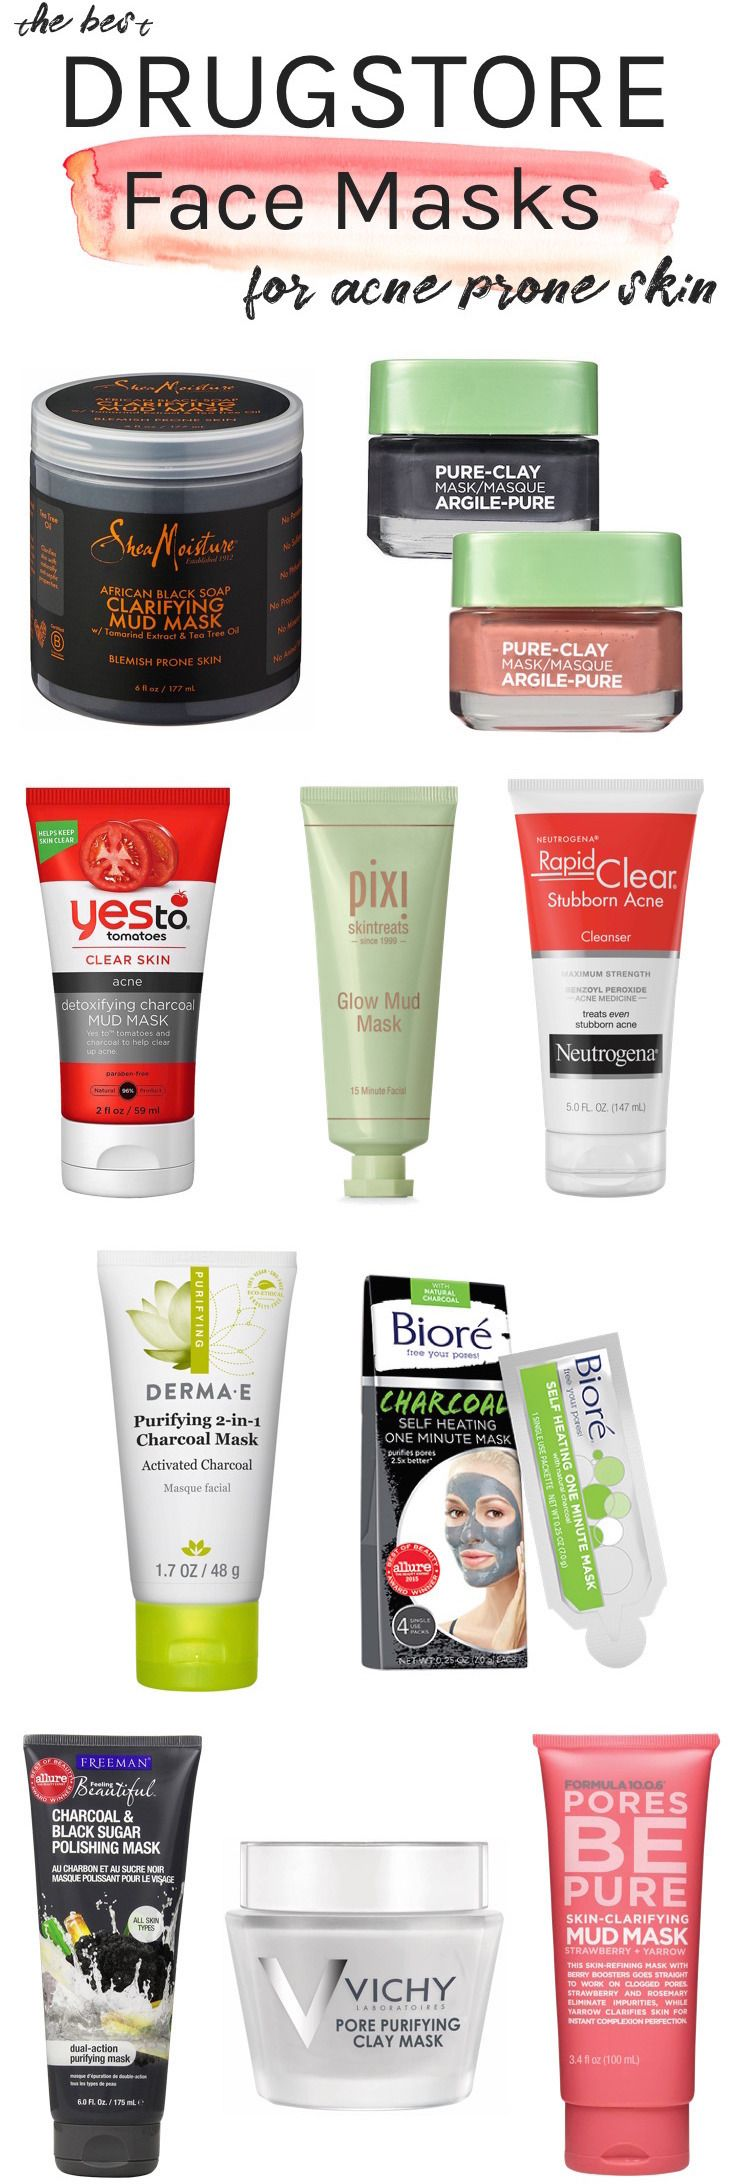 Best Drugstore Face Masks For Acne Prone, Oily Skin (All